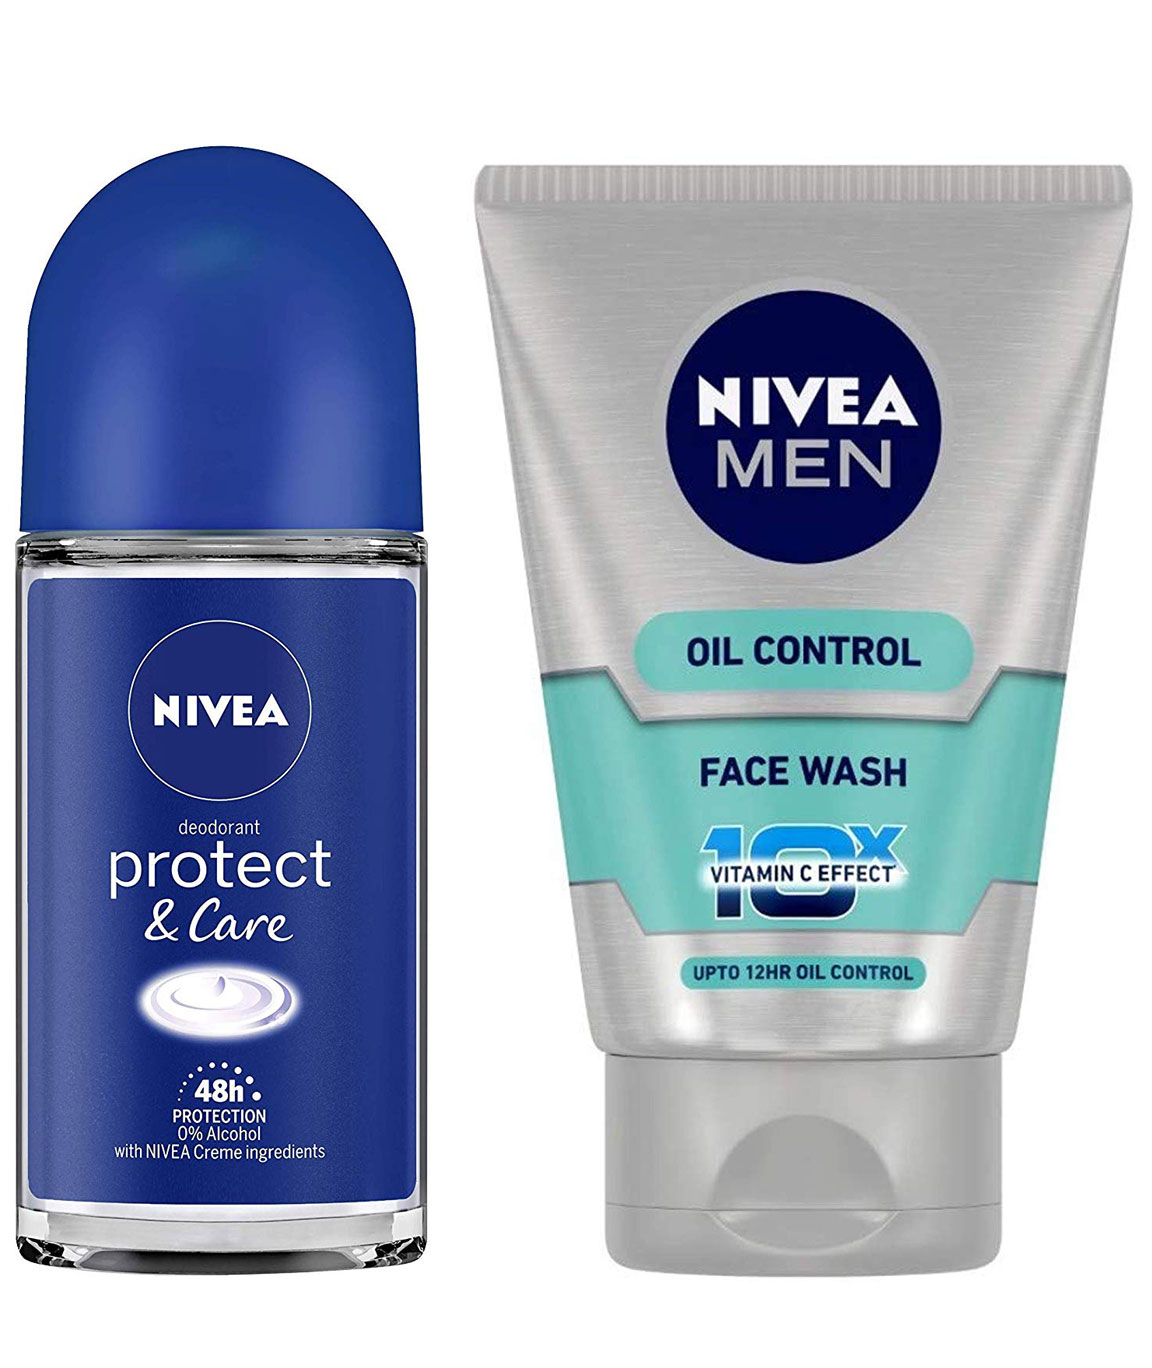 NIVEA Roll-on Deodorant, Protect and Care, 50ml & MEN Face Wash, Oil Control With Vitamin C, 100ml Combo